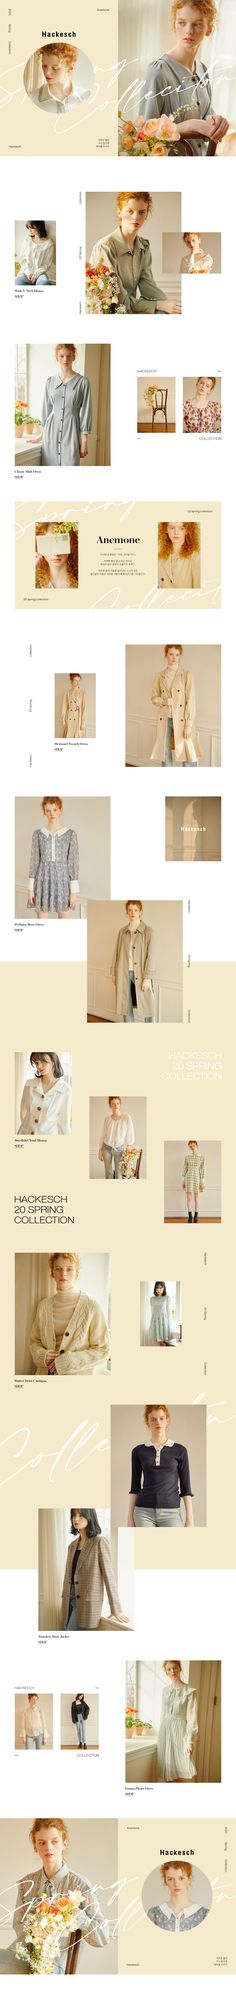 W concept – fashion editorial layout Graphic Design Layouts, Web Layout, Text Design, Email Design, Layout Design, Logo Design, Editorial Design, Editorial Layout, Magazine Design